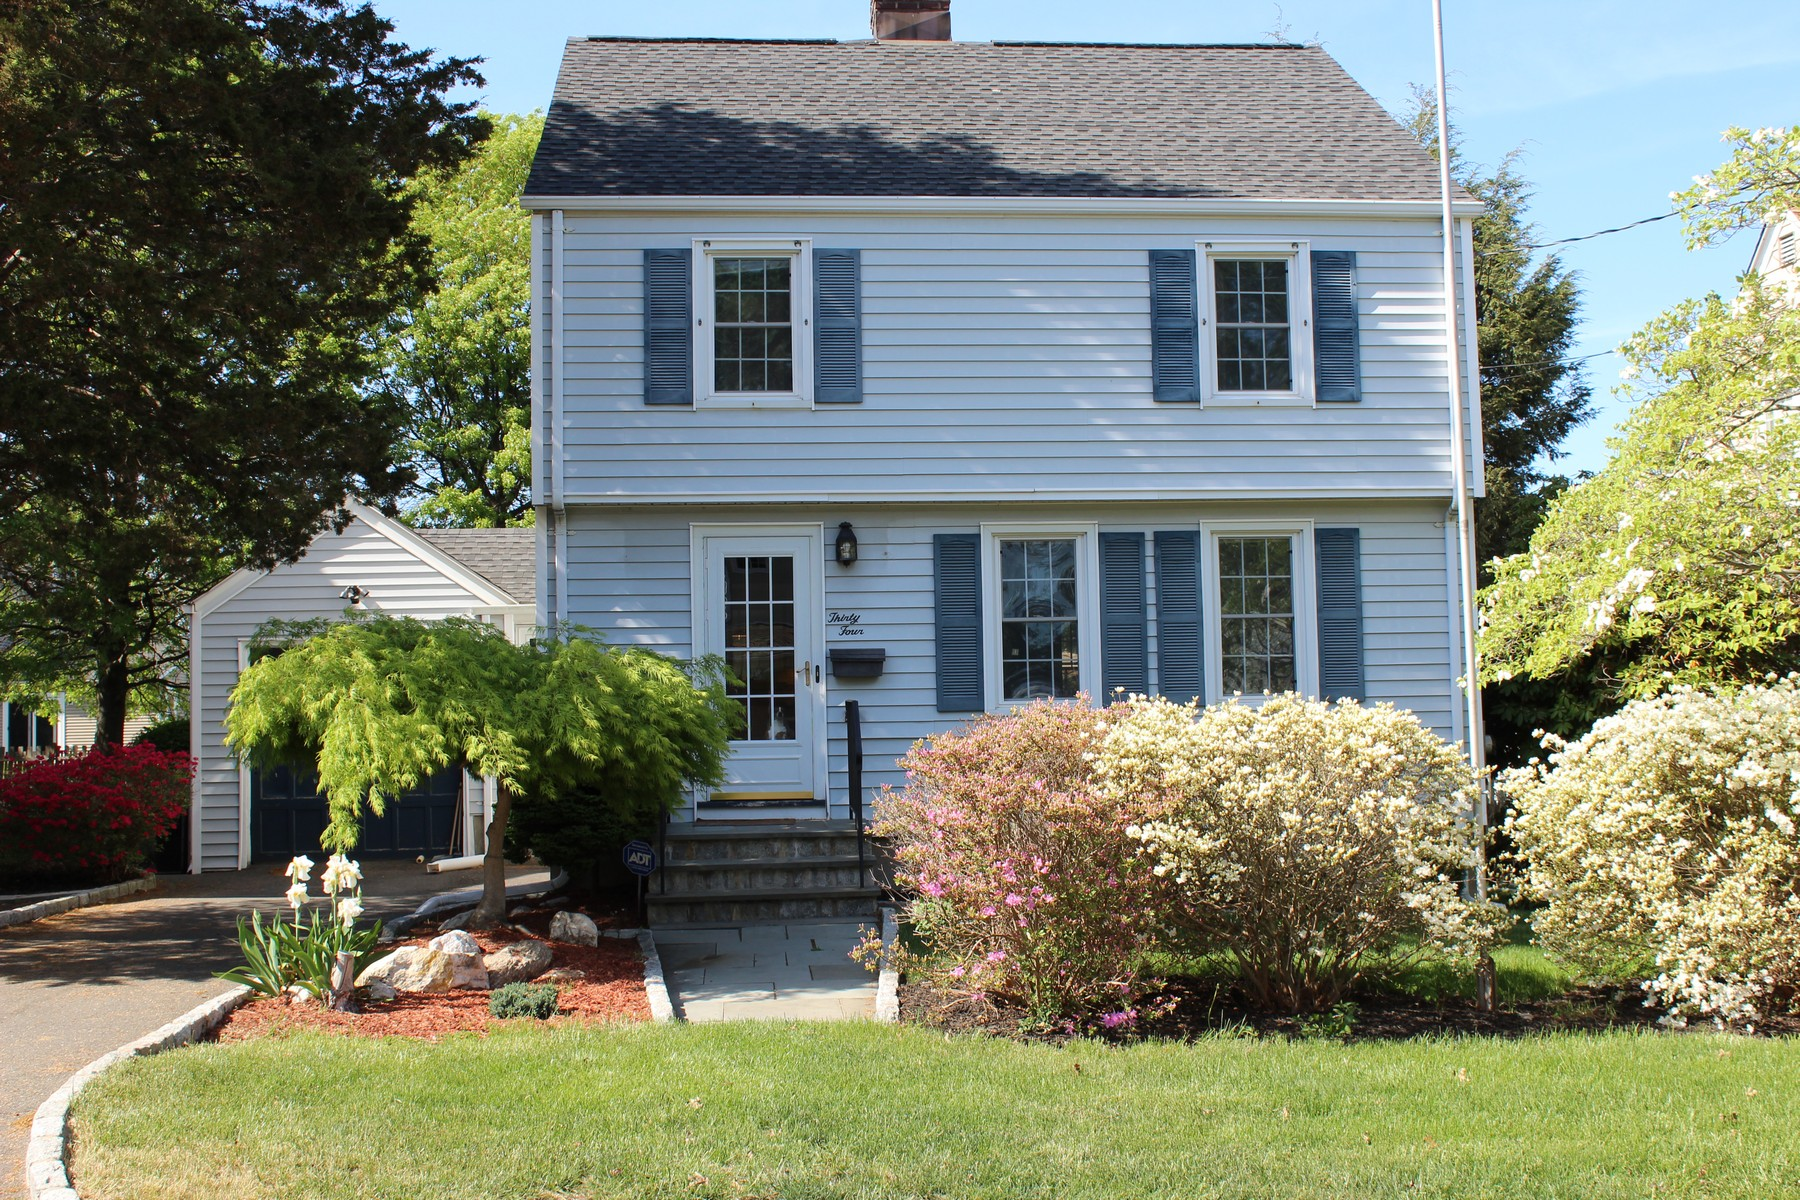 Single Family Home for Sale at Pride in Ownership Shows in this Paradise Green Colonial on a Quiet Street 34 Vine Street Stratford, Connecticut, 06614 United States